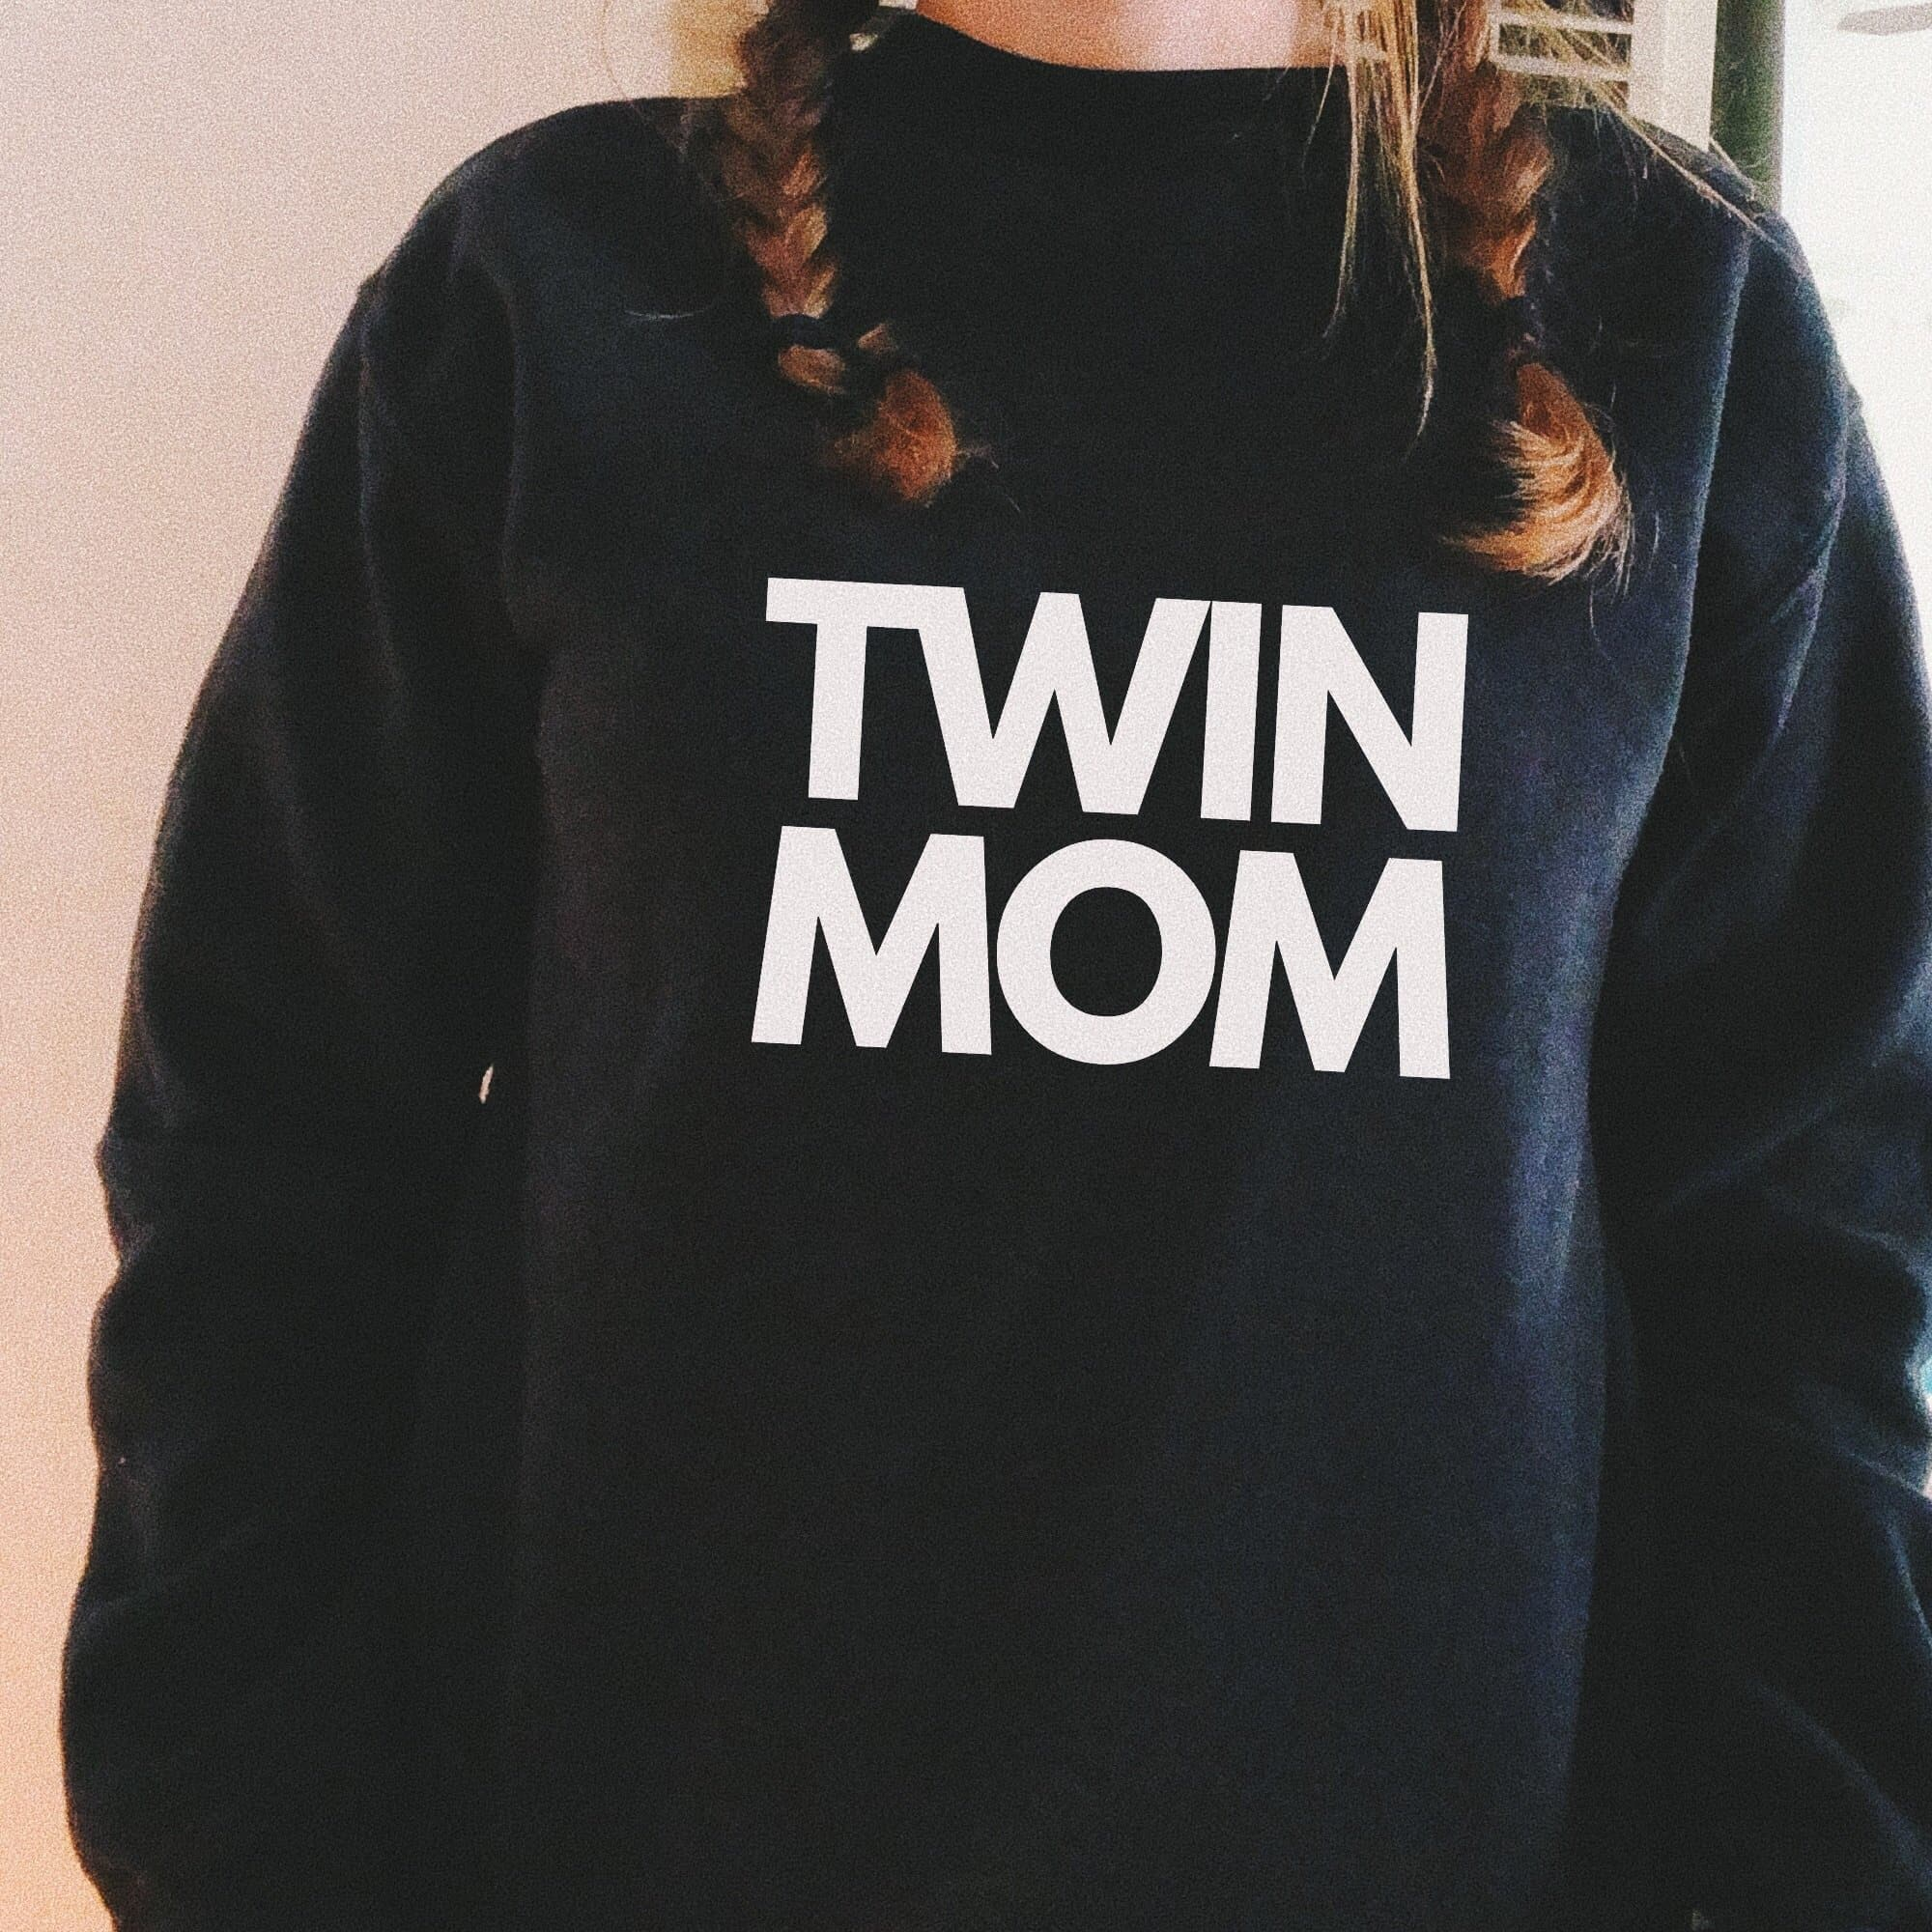 Twin Mom Sweater (Black)